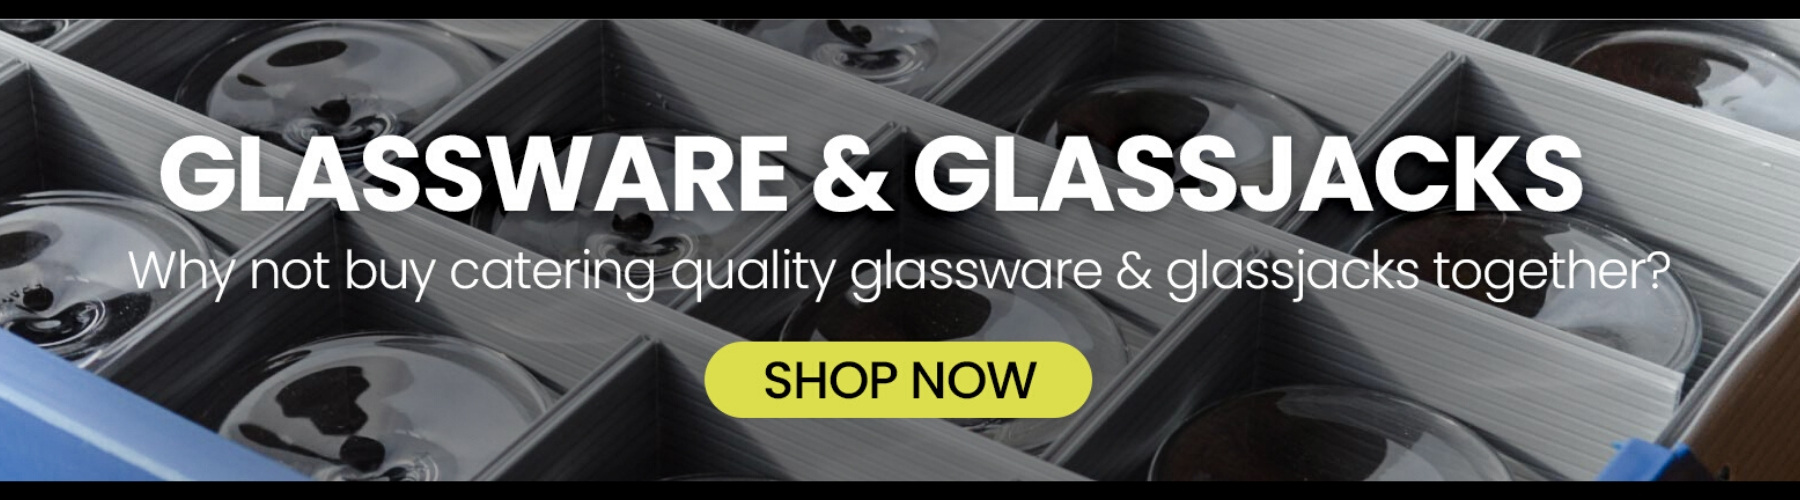 Glassware-boxes-Glasses-Glassjacks